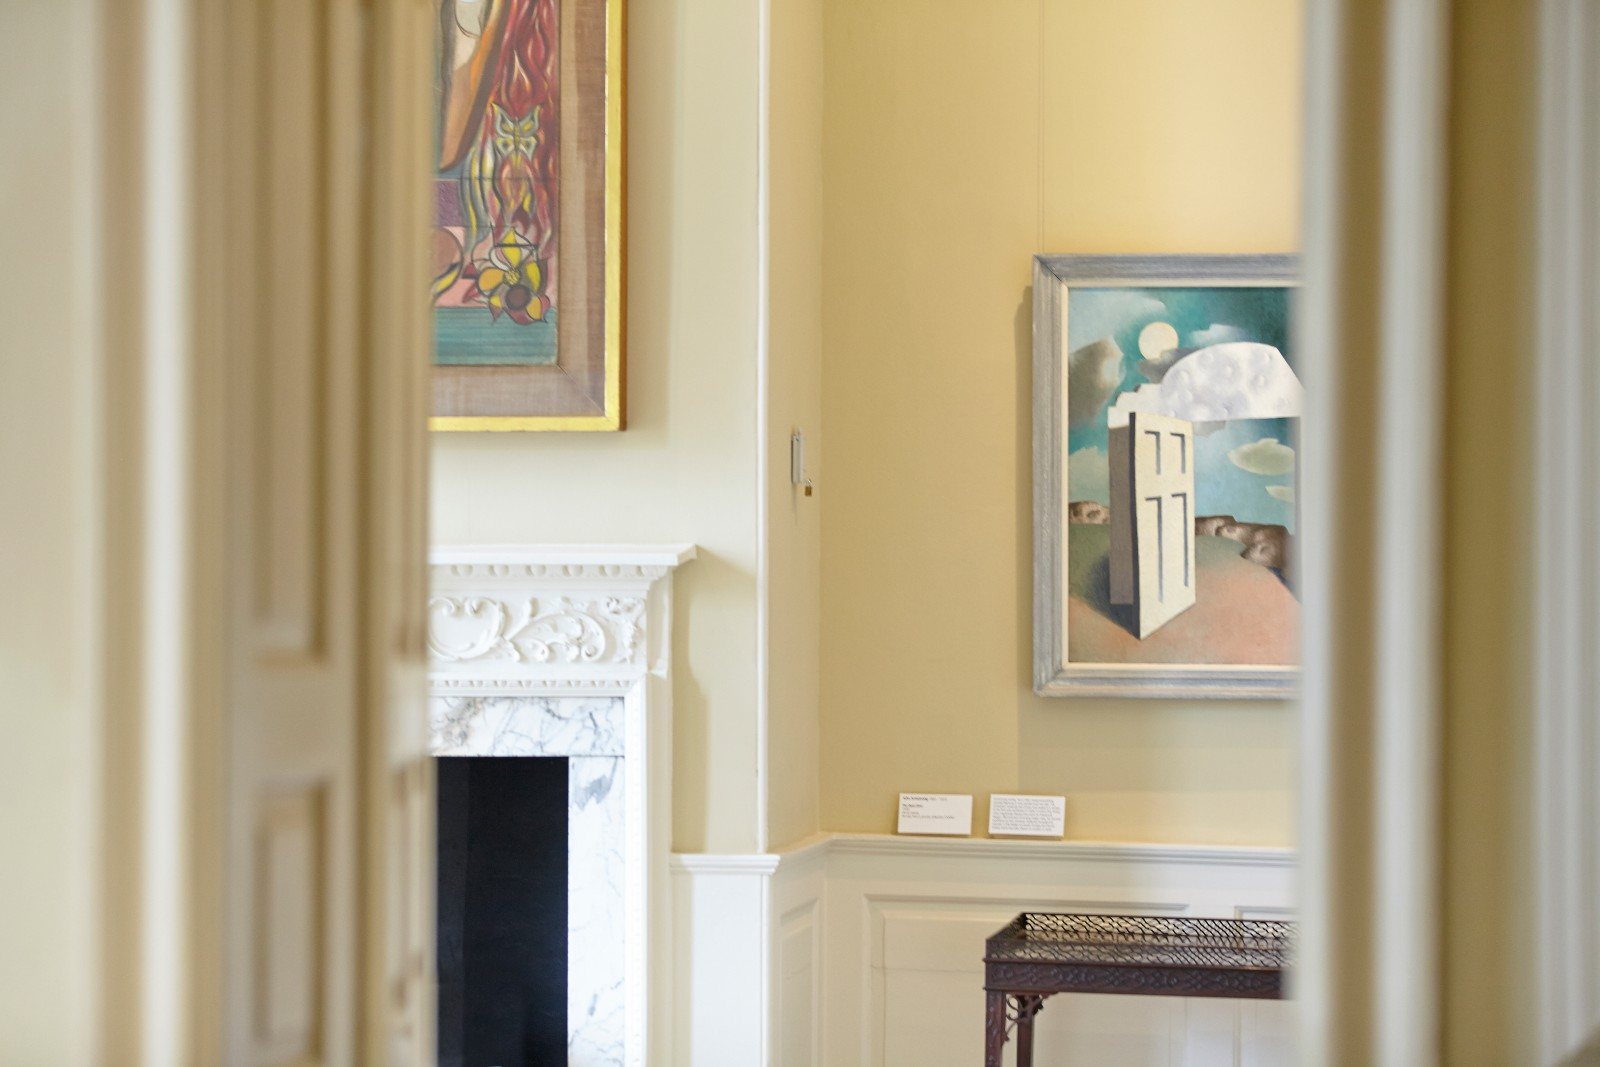 An interior view of a period house looking through a doorway into a room hung with modern art.